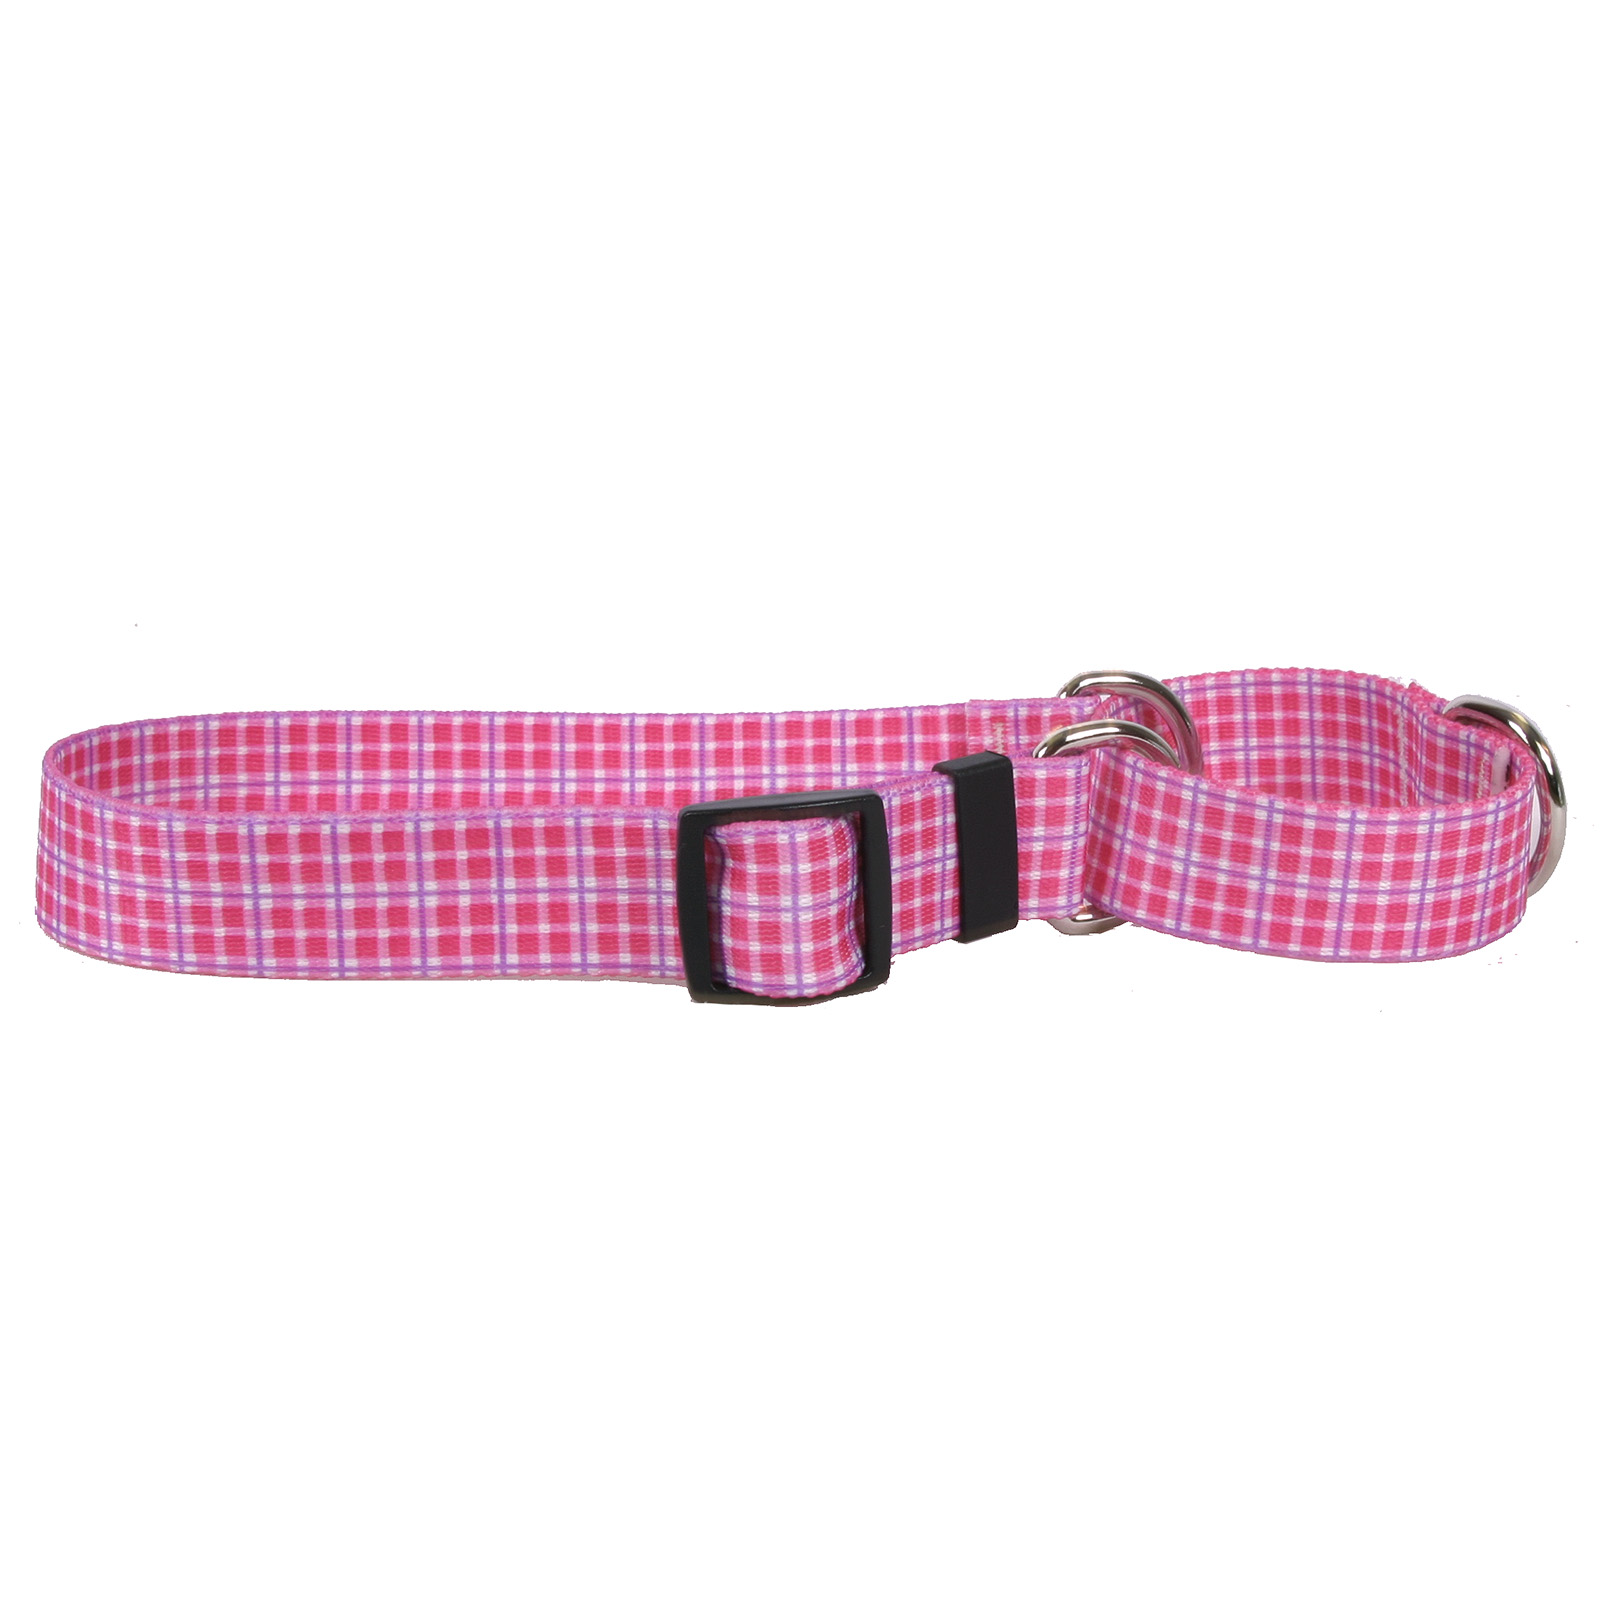 Preppy Plaid Pink Martingale Collar